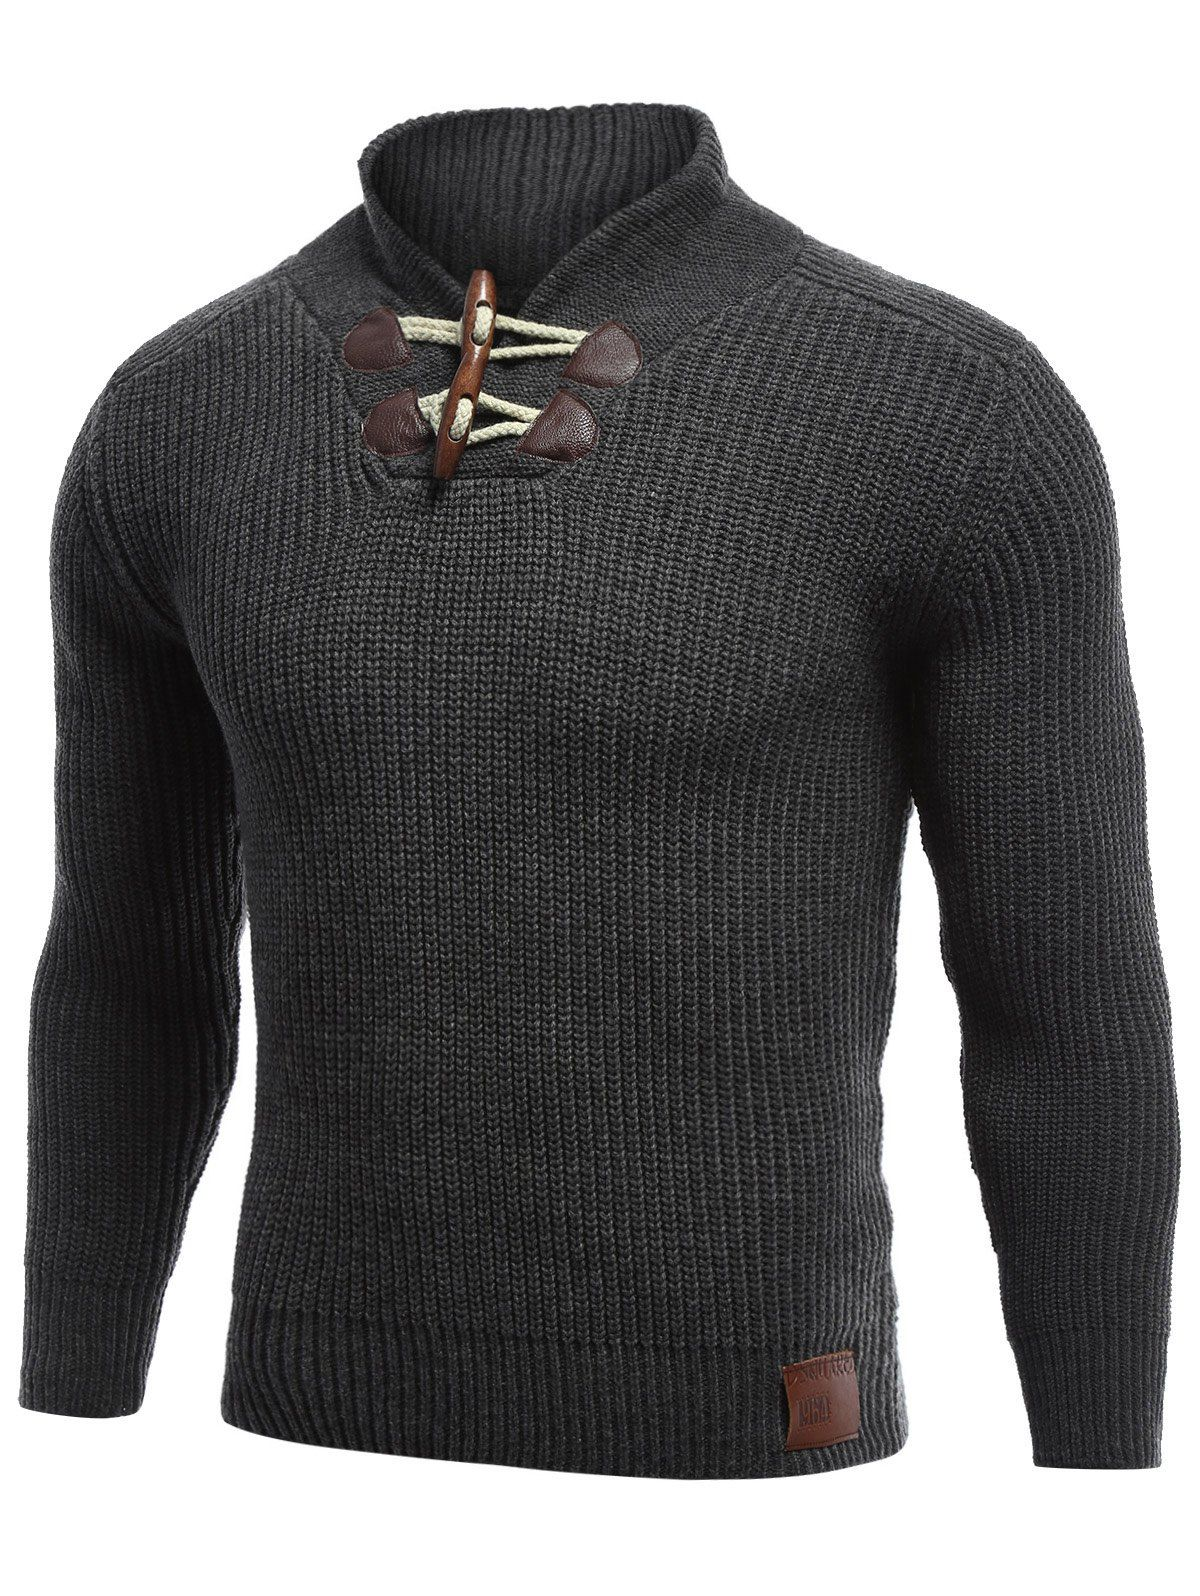 Flat Knitted Pullover Toggle Sweater | Pullover, Black and Men's ...